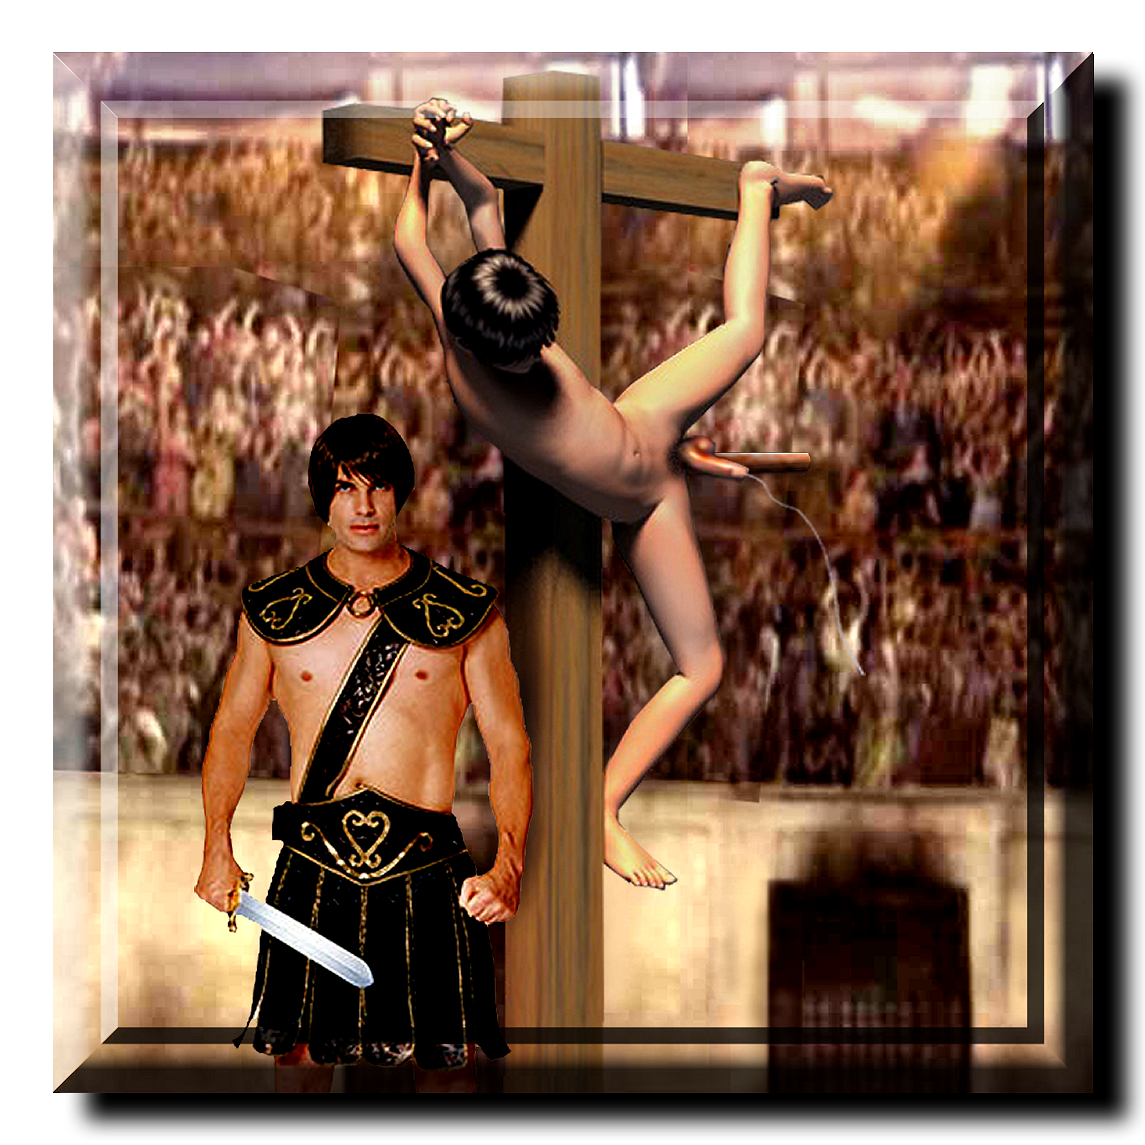 Roman bdsm executions erotic images